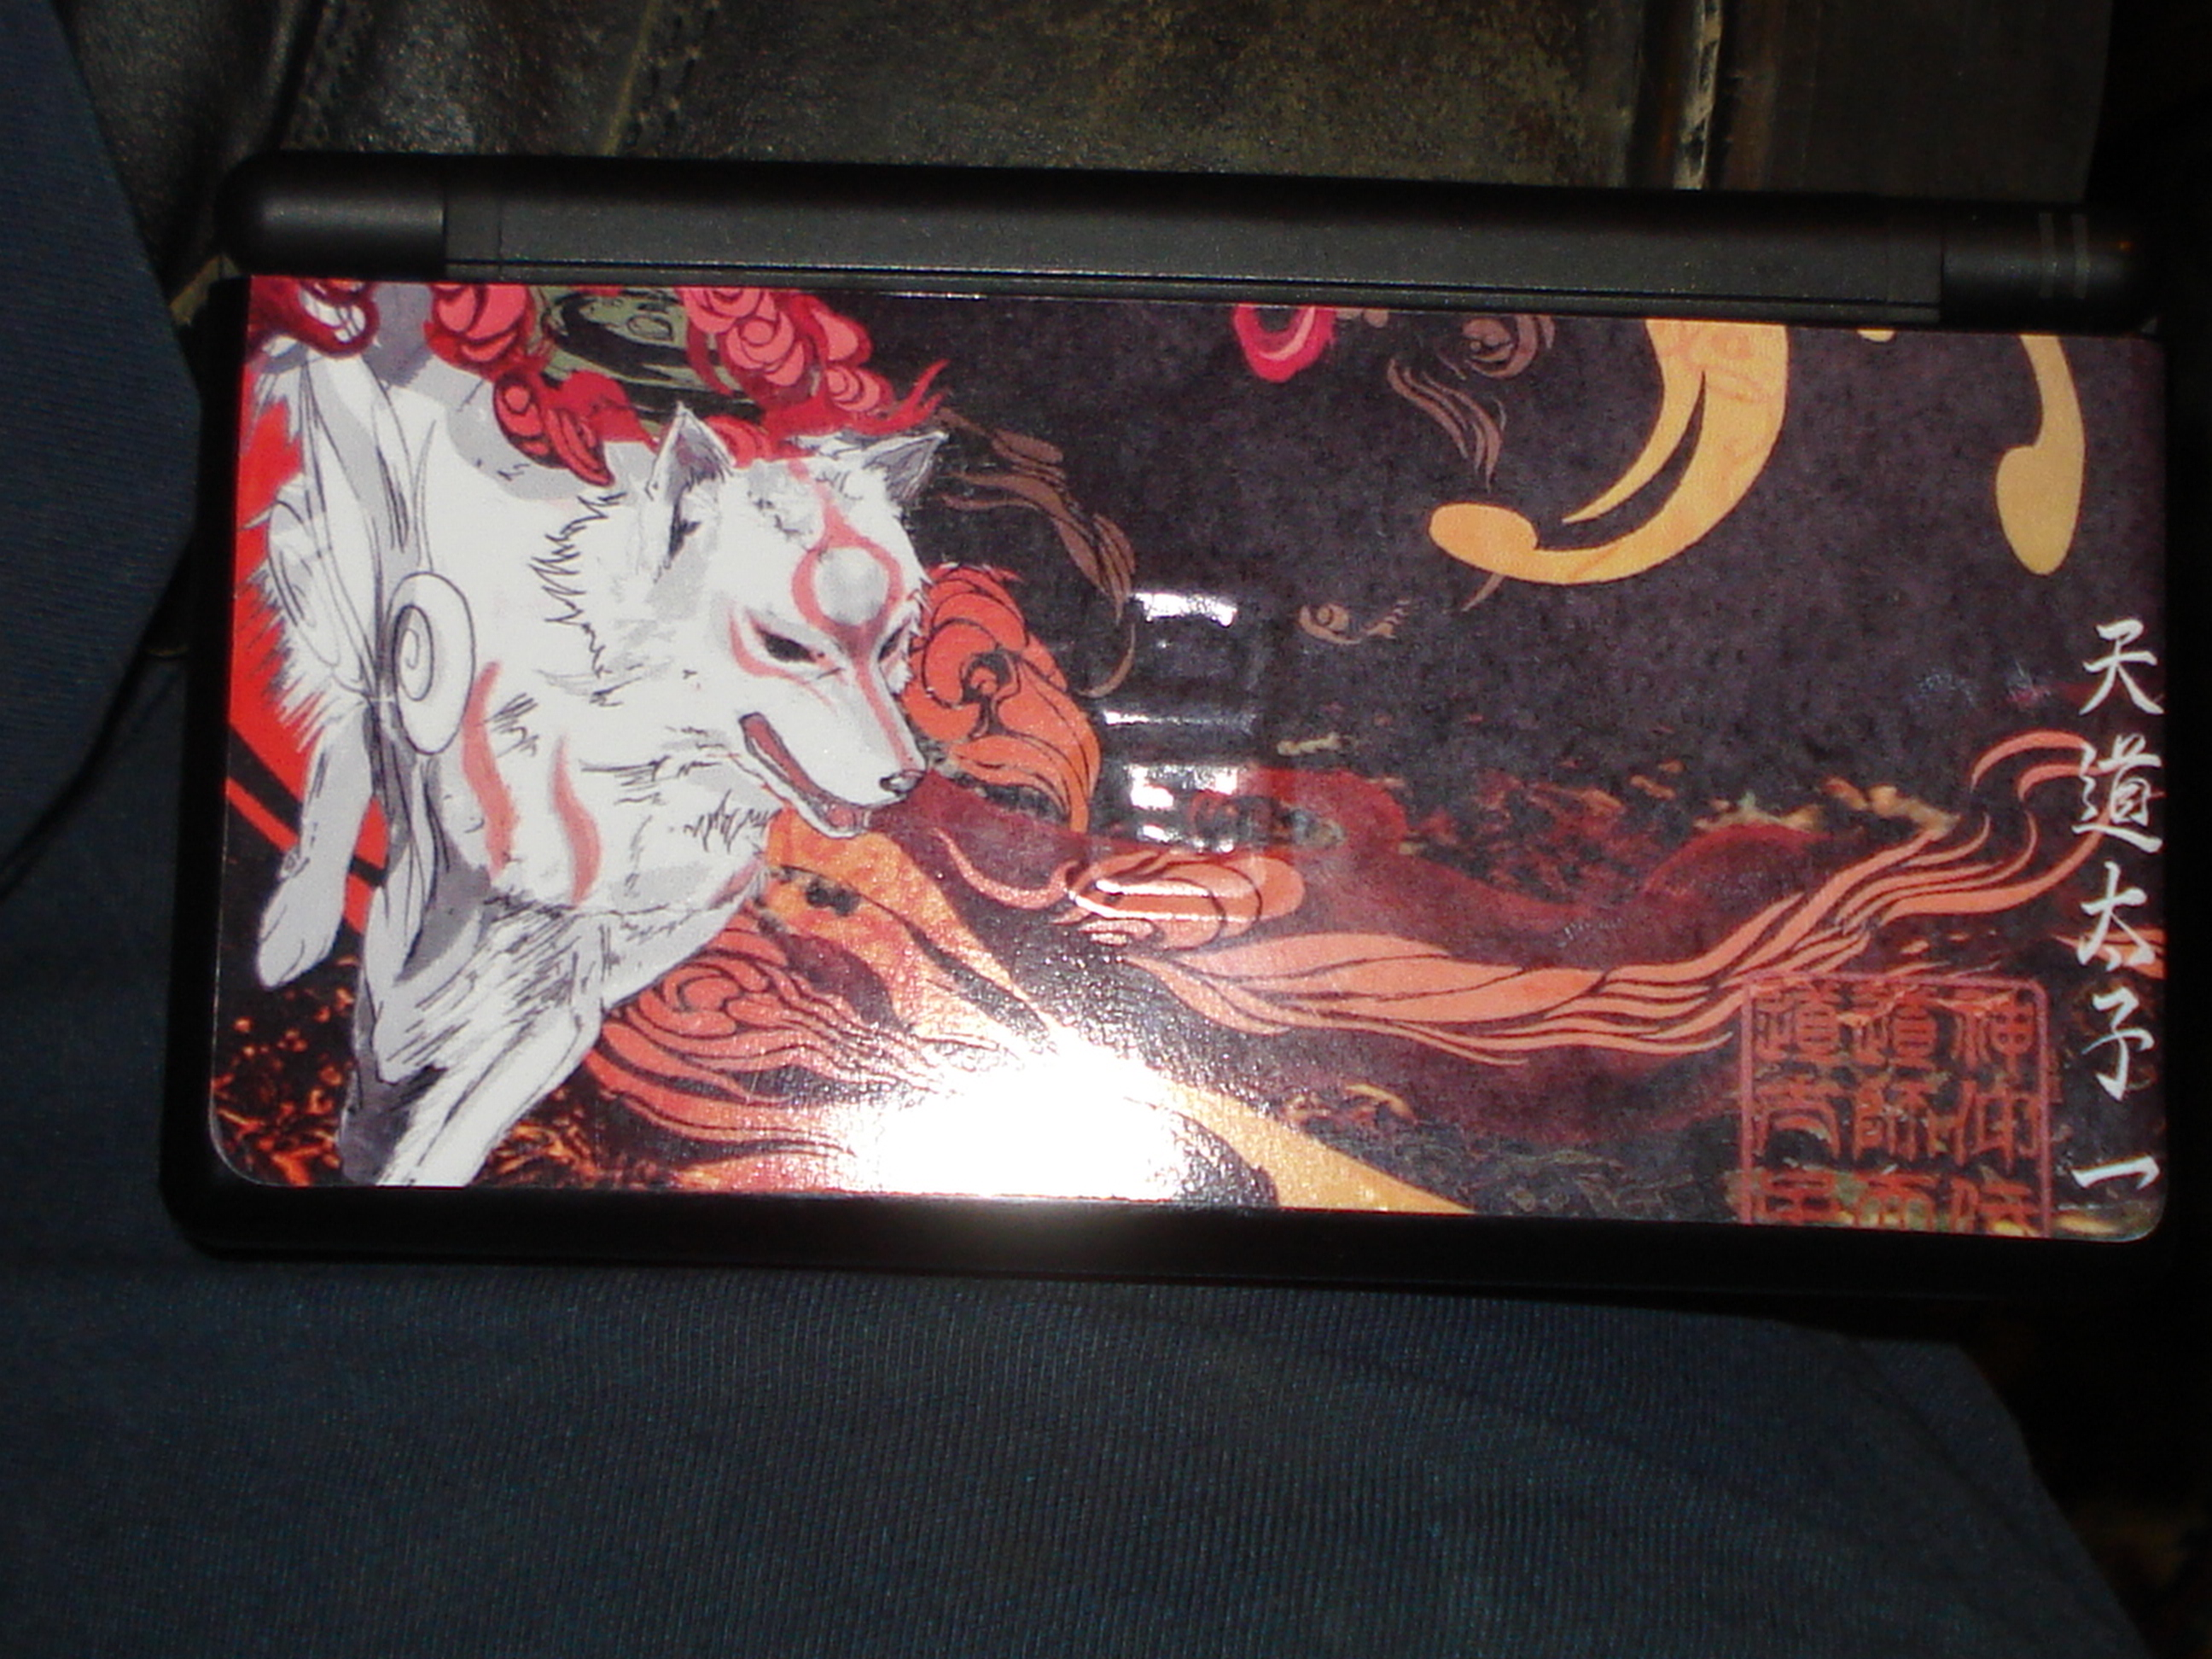 DS skin OKami part 1 of 2 :3 by DarkFoxProjectX